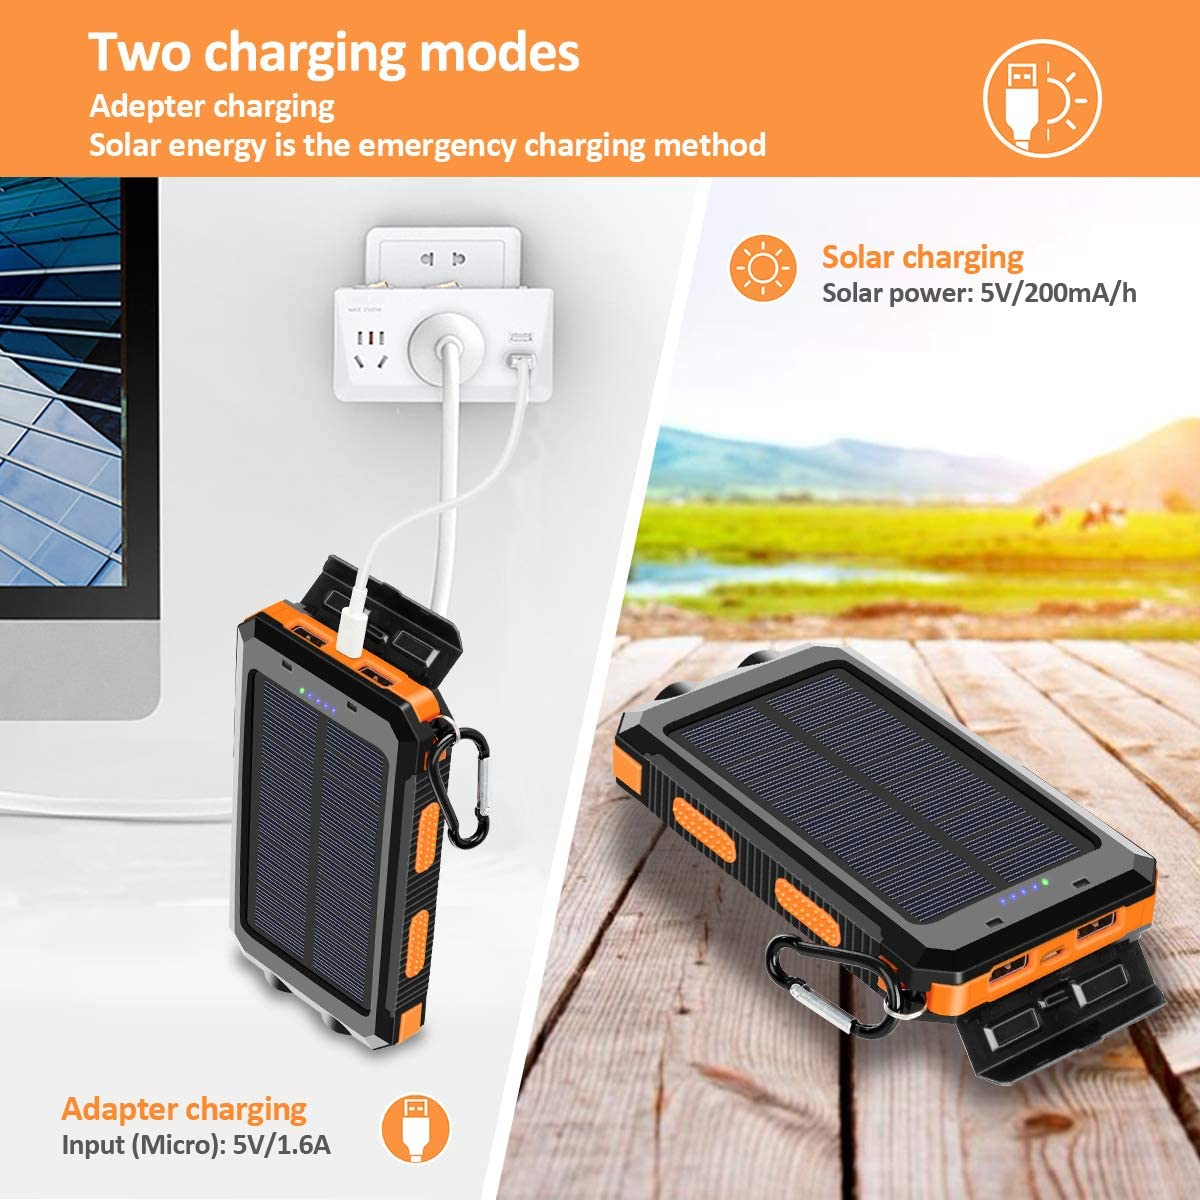 Suscell 20000mAh Portable Outdoor Waterproof Solar Power Bank 2 Led Light Flashlight with Compass for iOS Android Orange Solar Charger Camping External Backup Battery Pack Dual 5V USB Ports Output